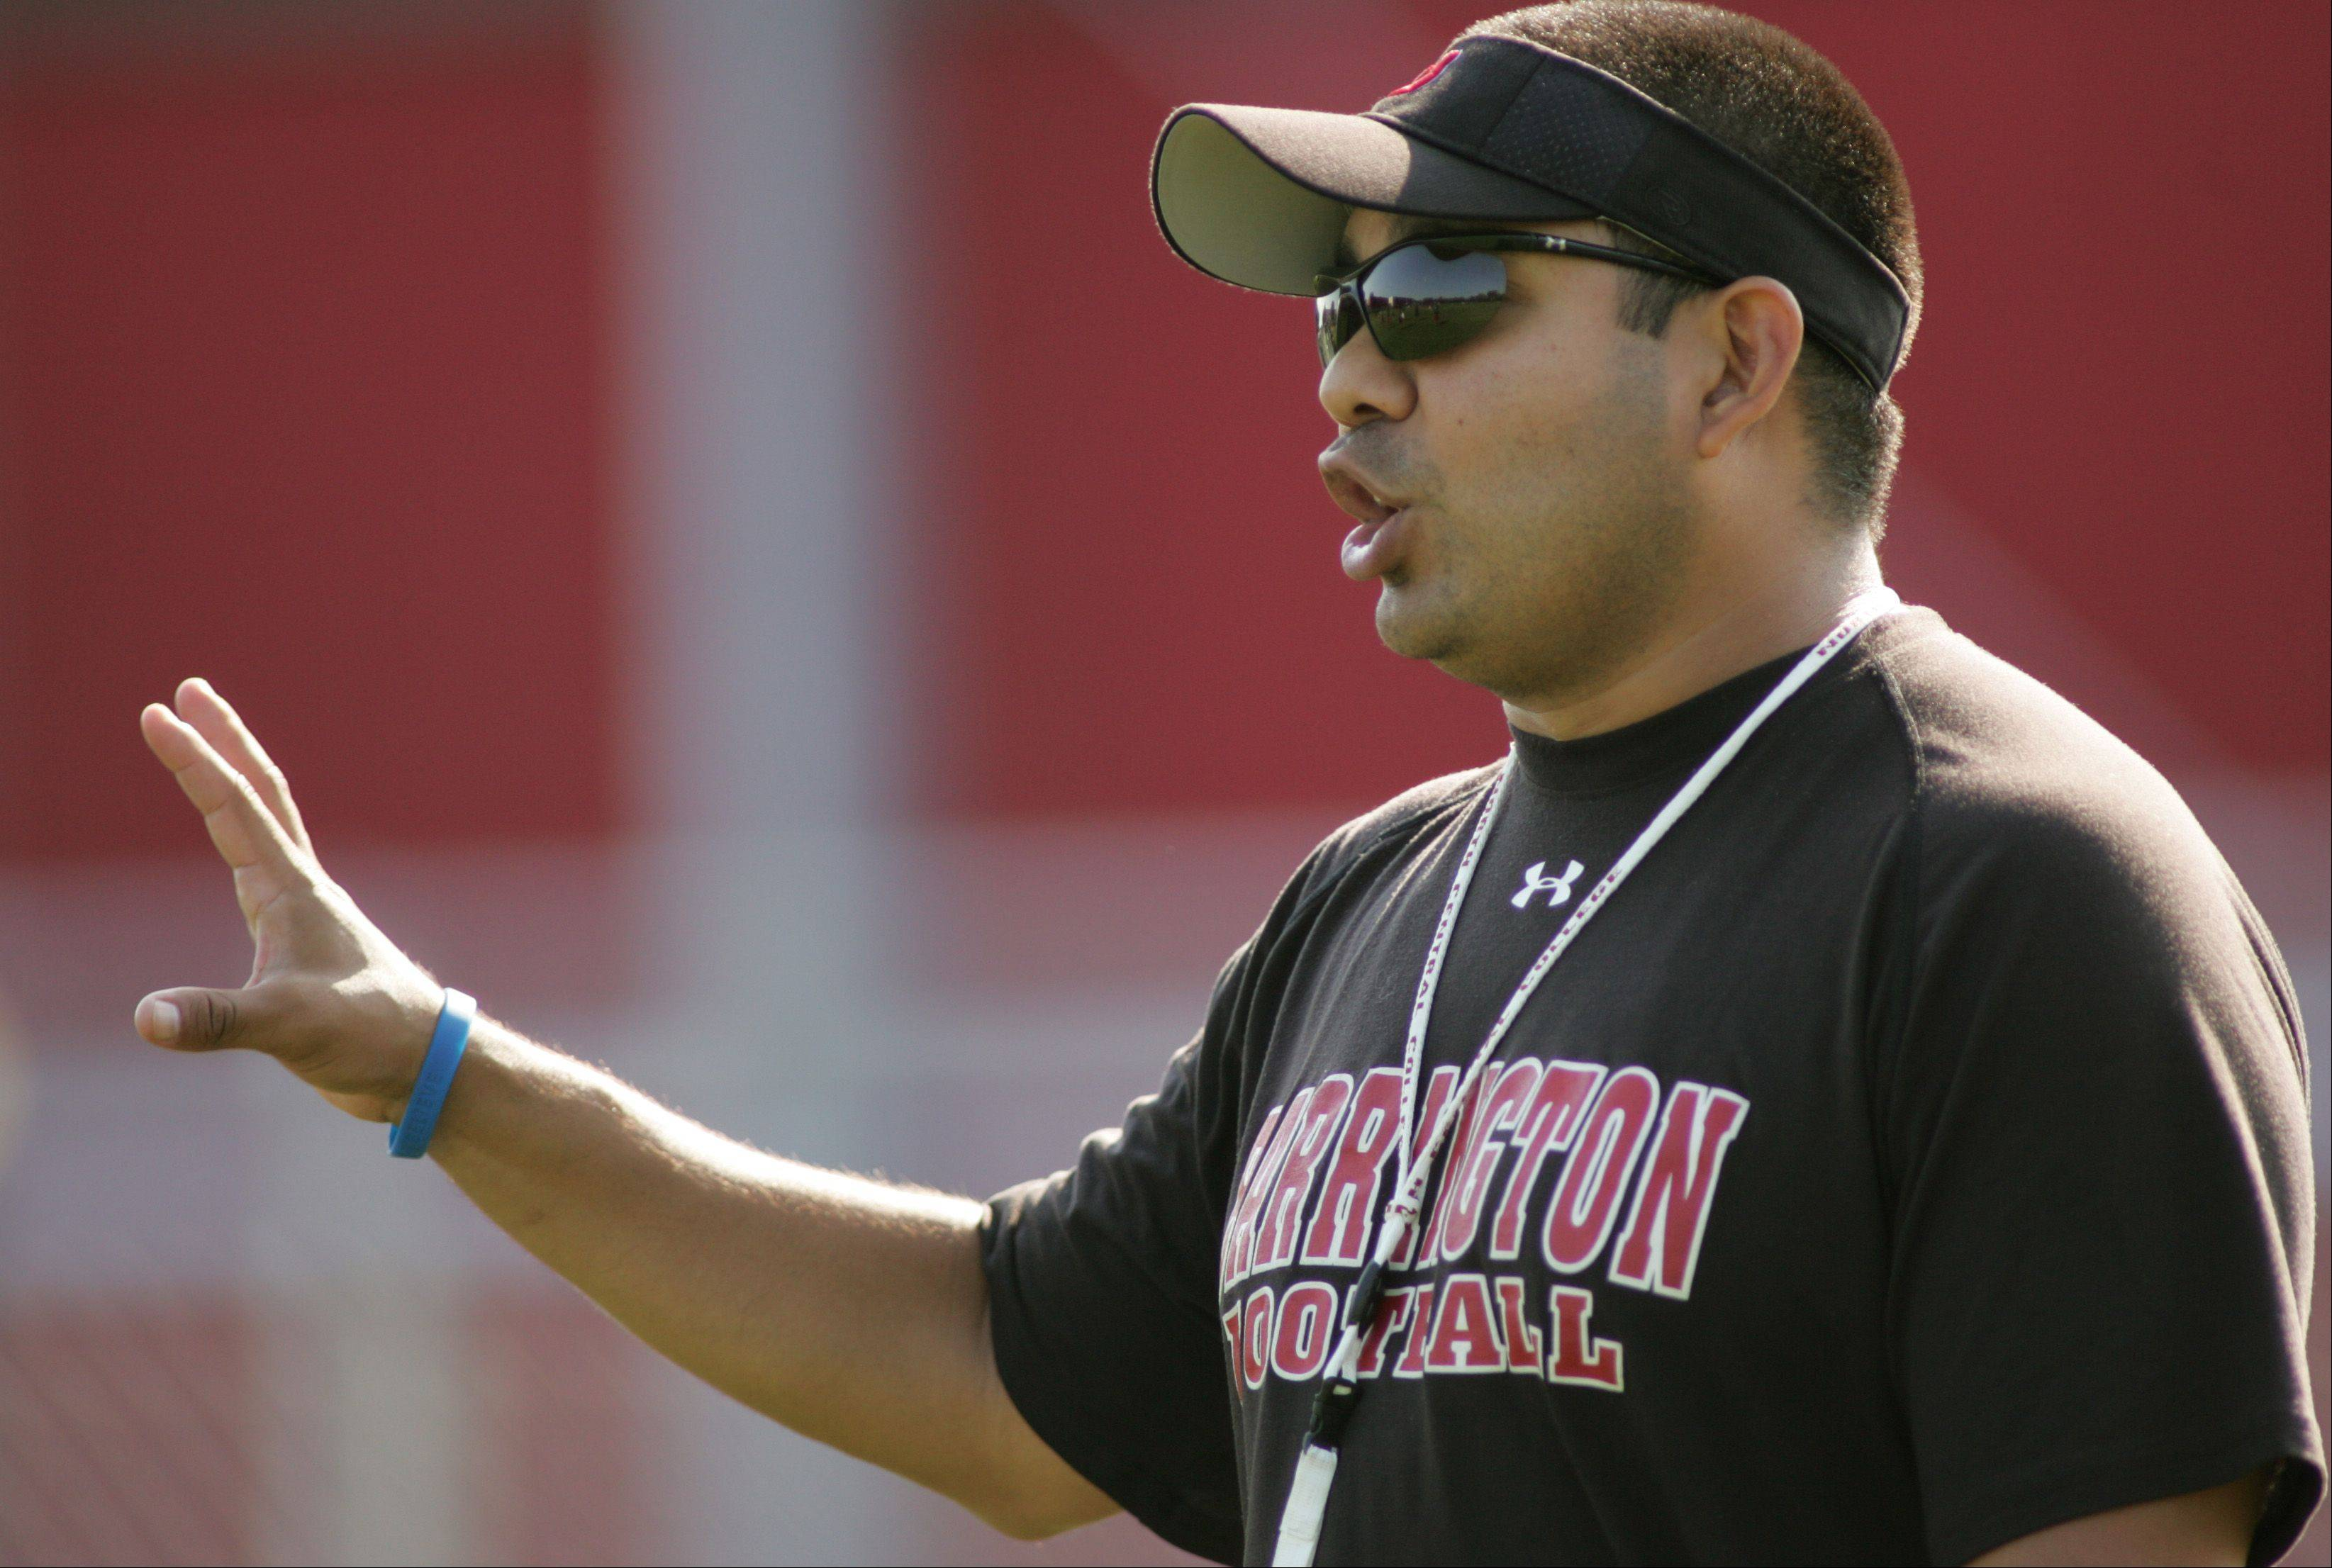 Coach Joe Sanchez runs varsity football practice at Barrington High School.